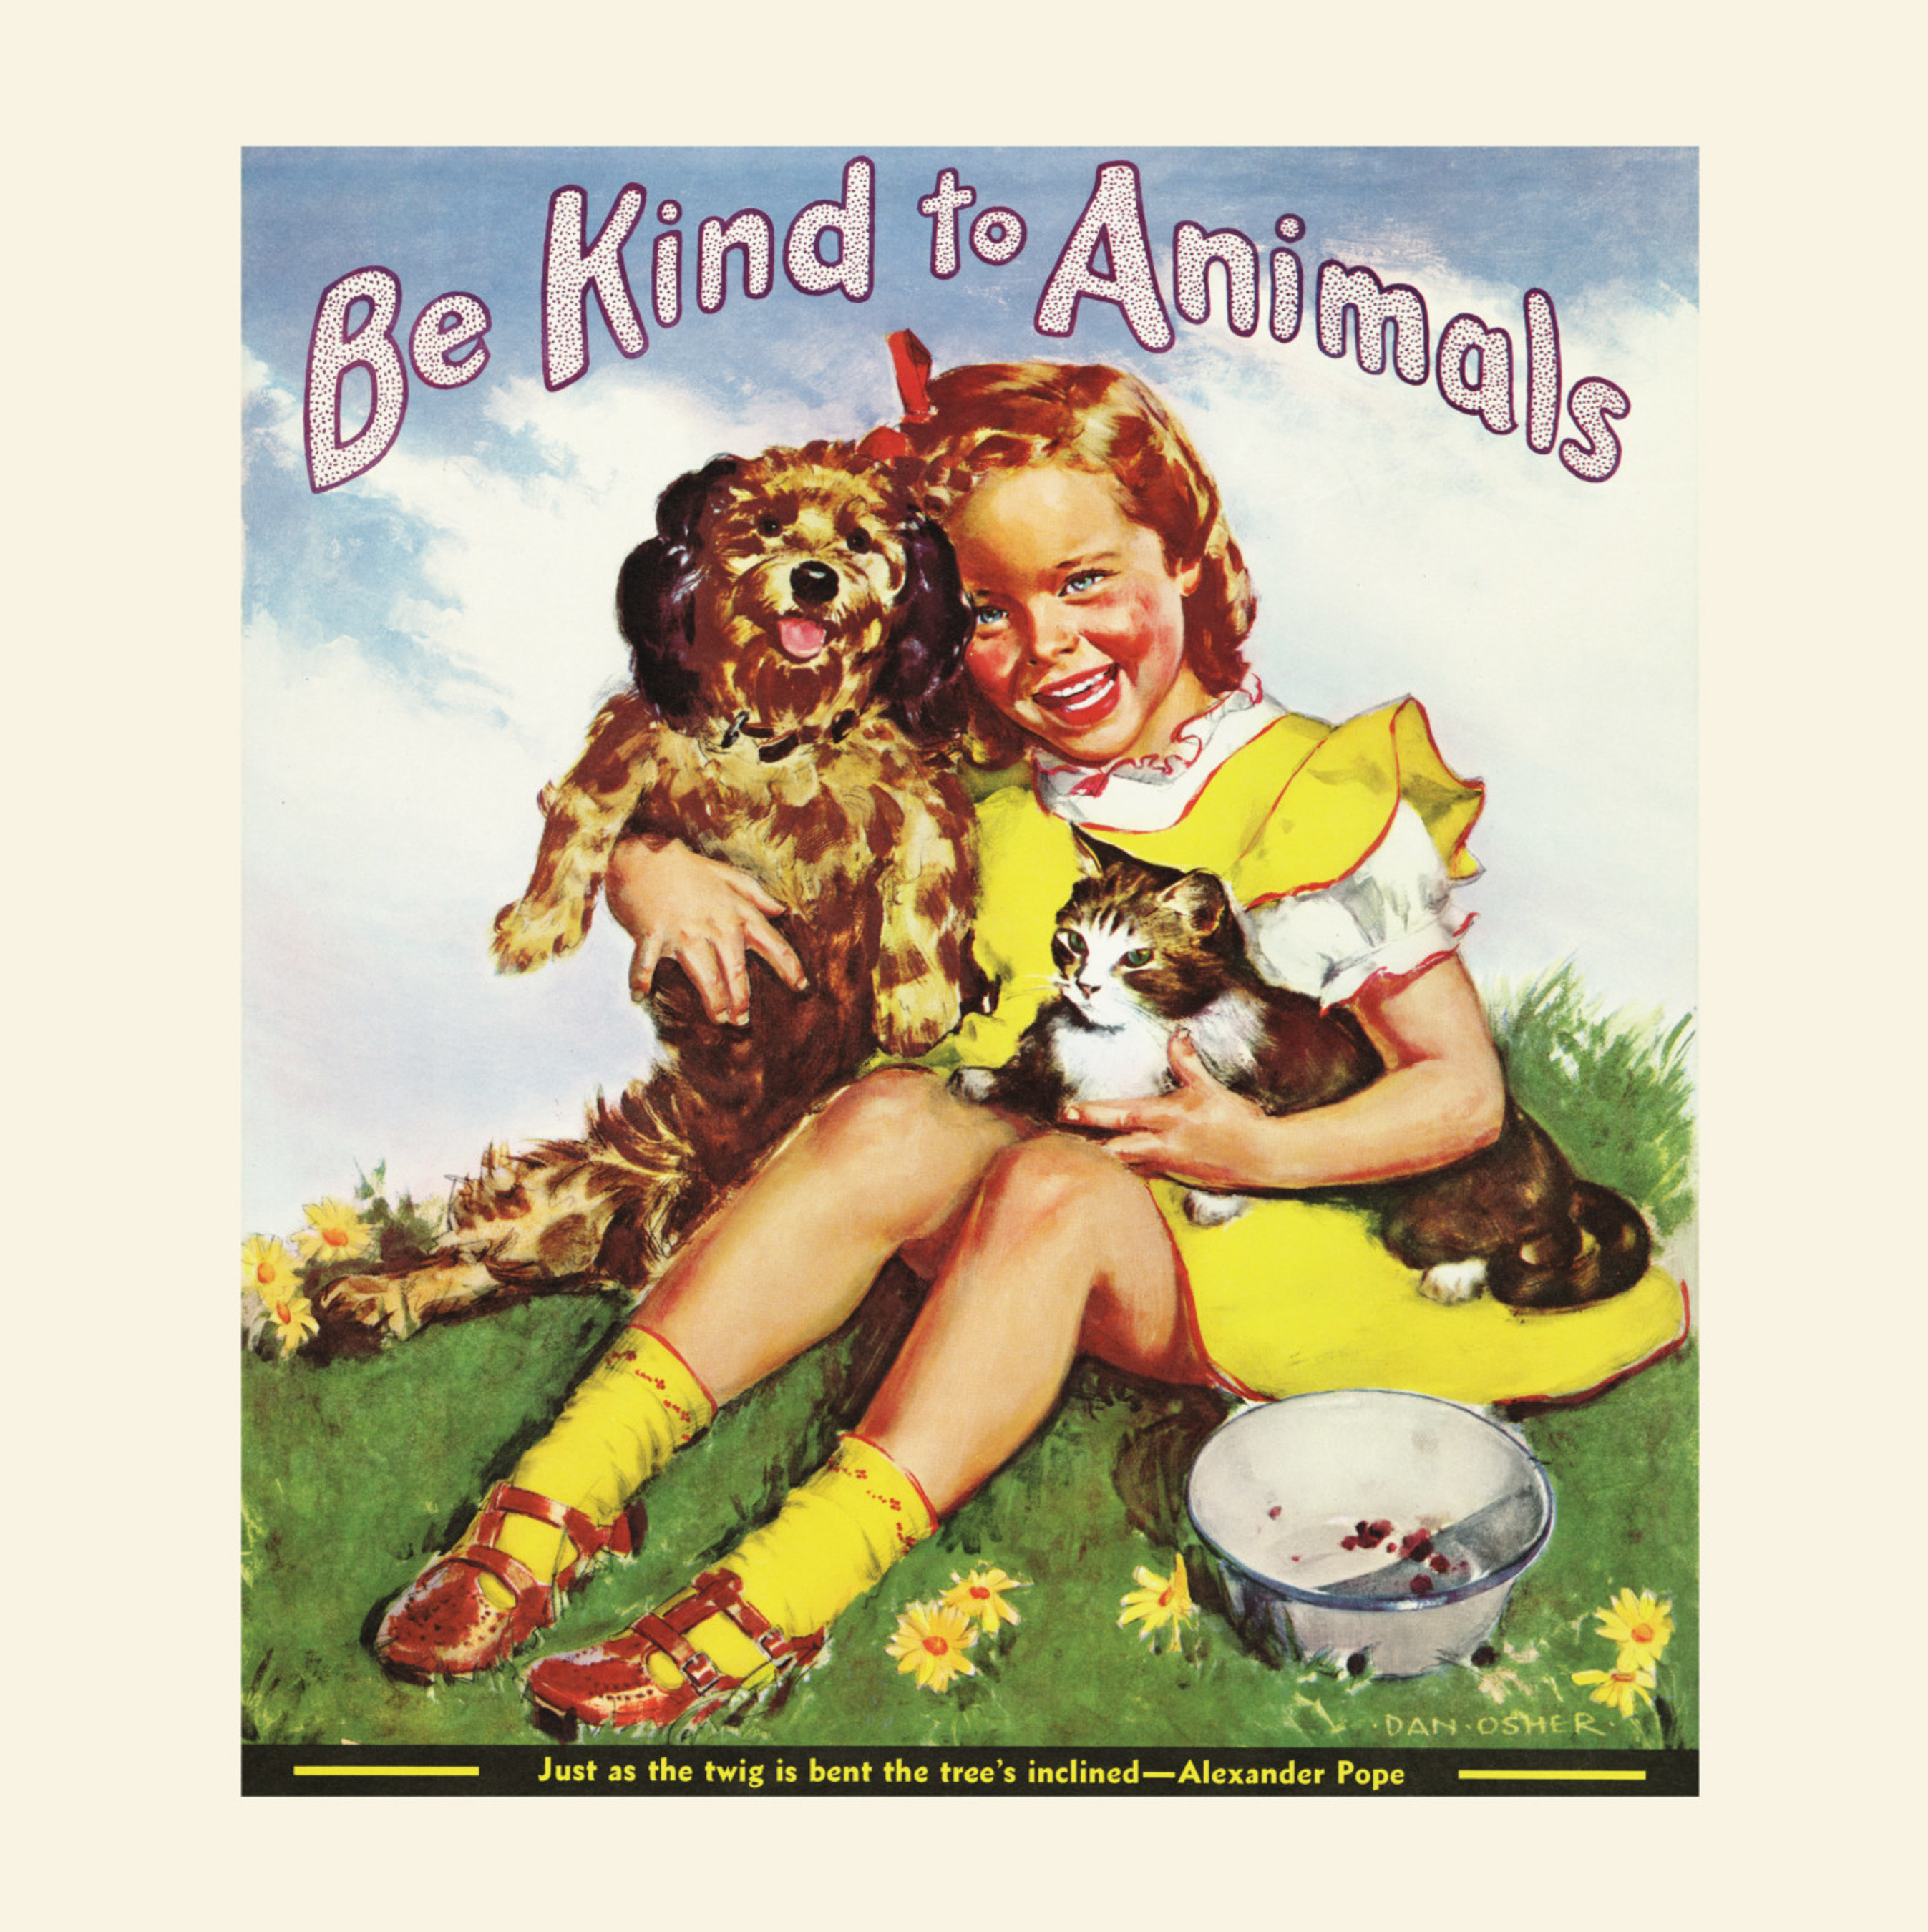 """American Humane Association's """"Be Kind to Animals Week"""" turns 100! Take the Kindness100 Pledge at Kindness100.org!"""